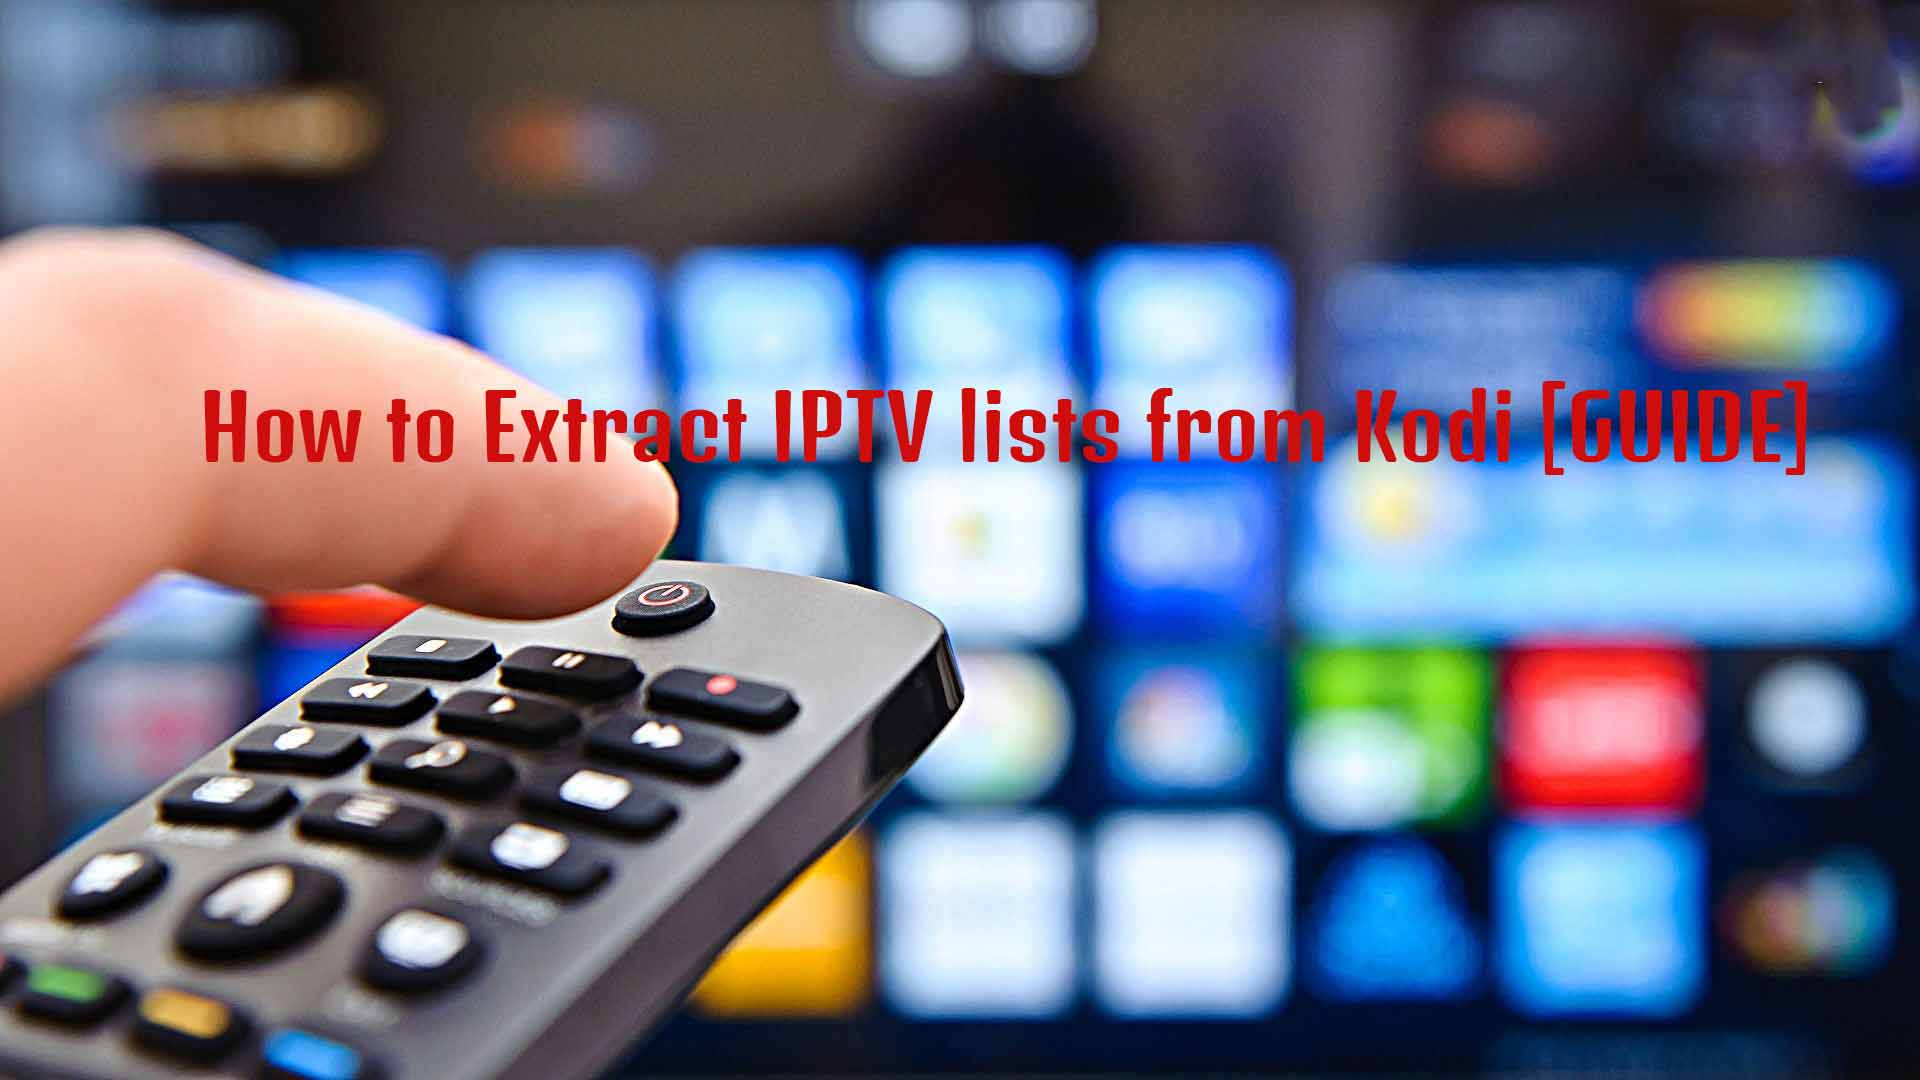 How to Extract IPTV lists from Kodi [GUIDE]